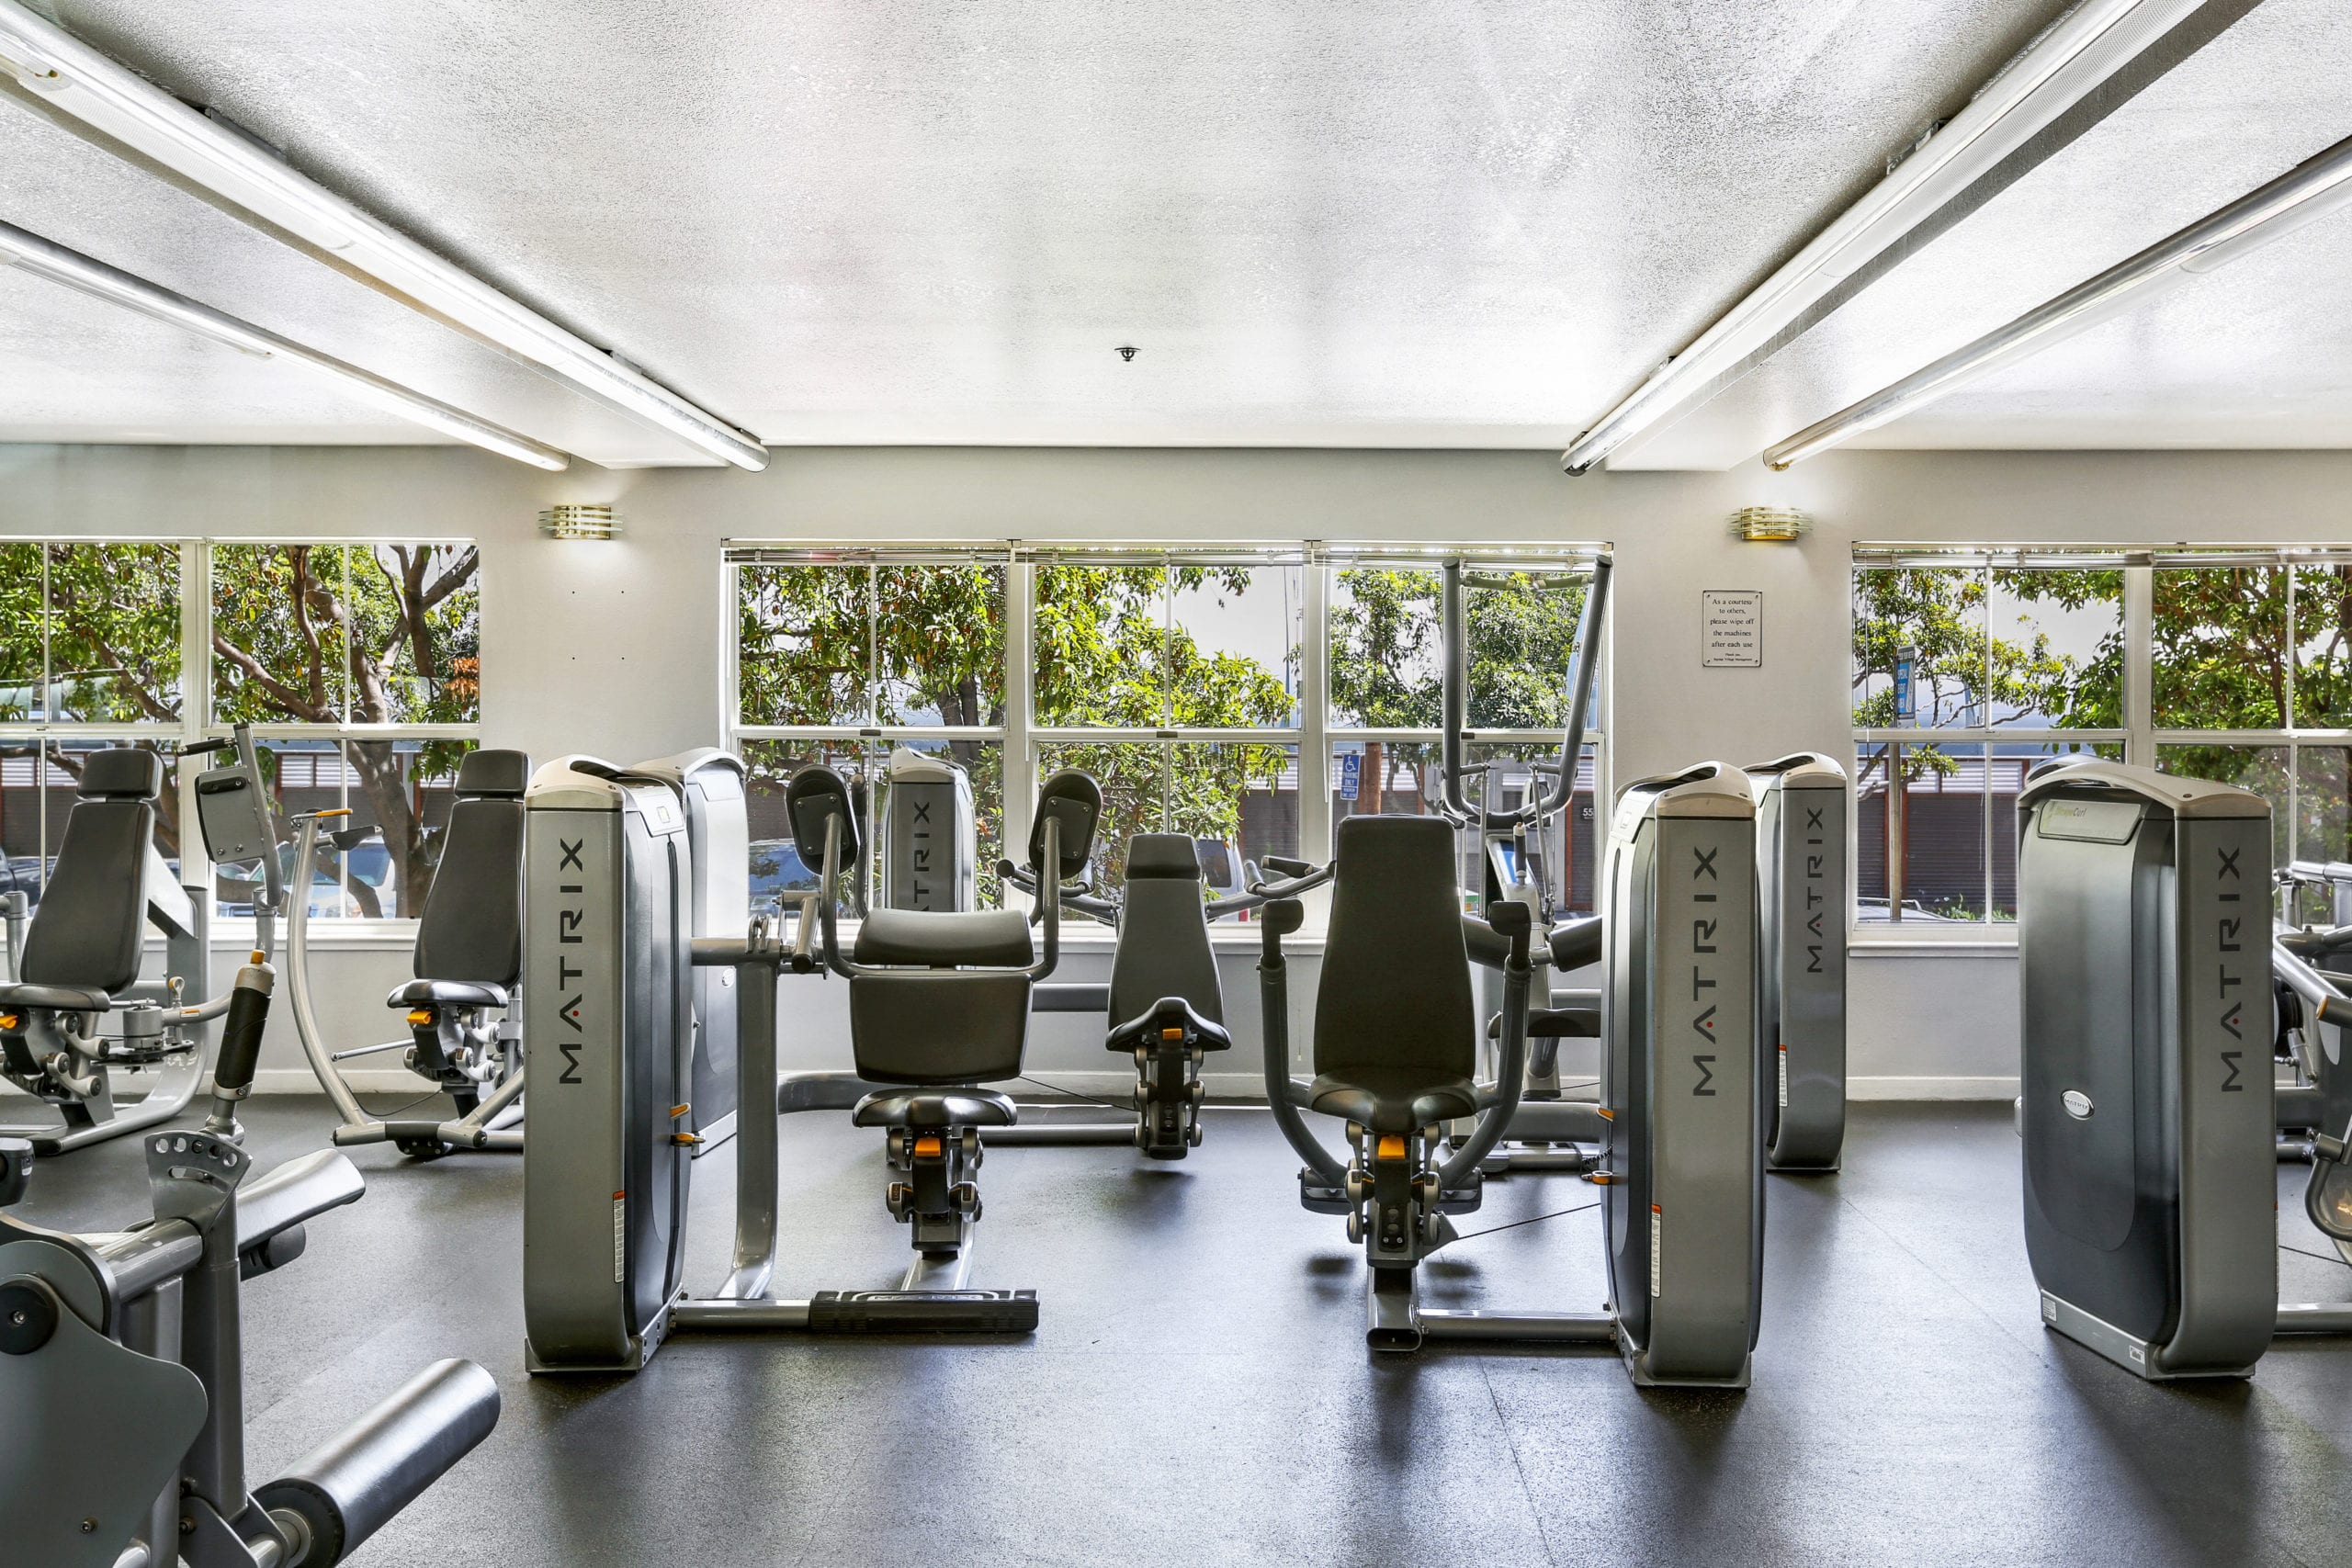 fitness center at bayside village apartments amenities